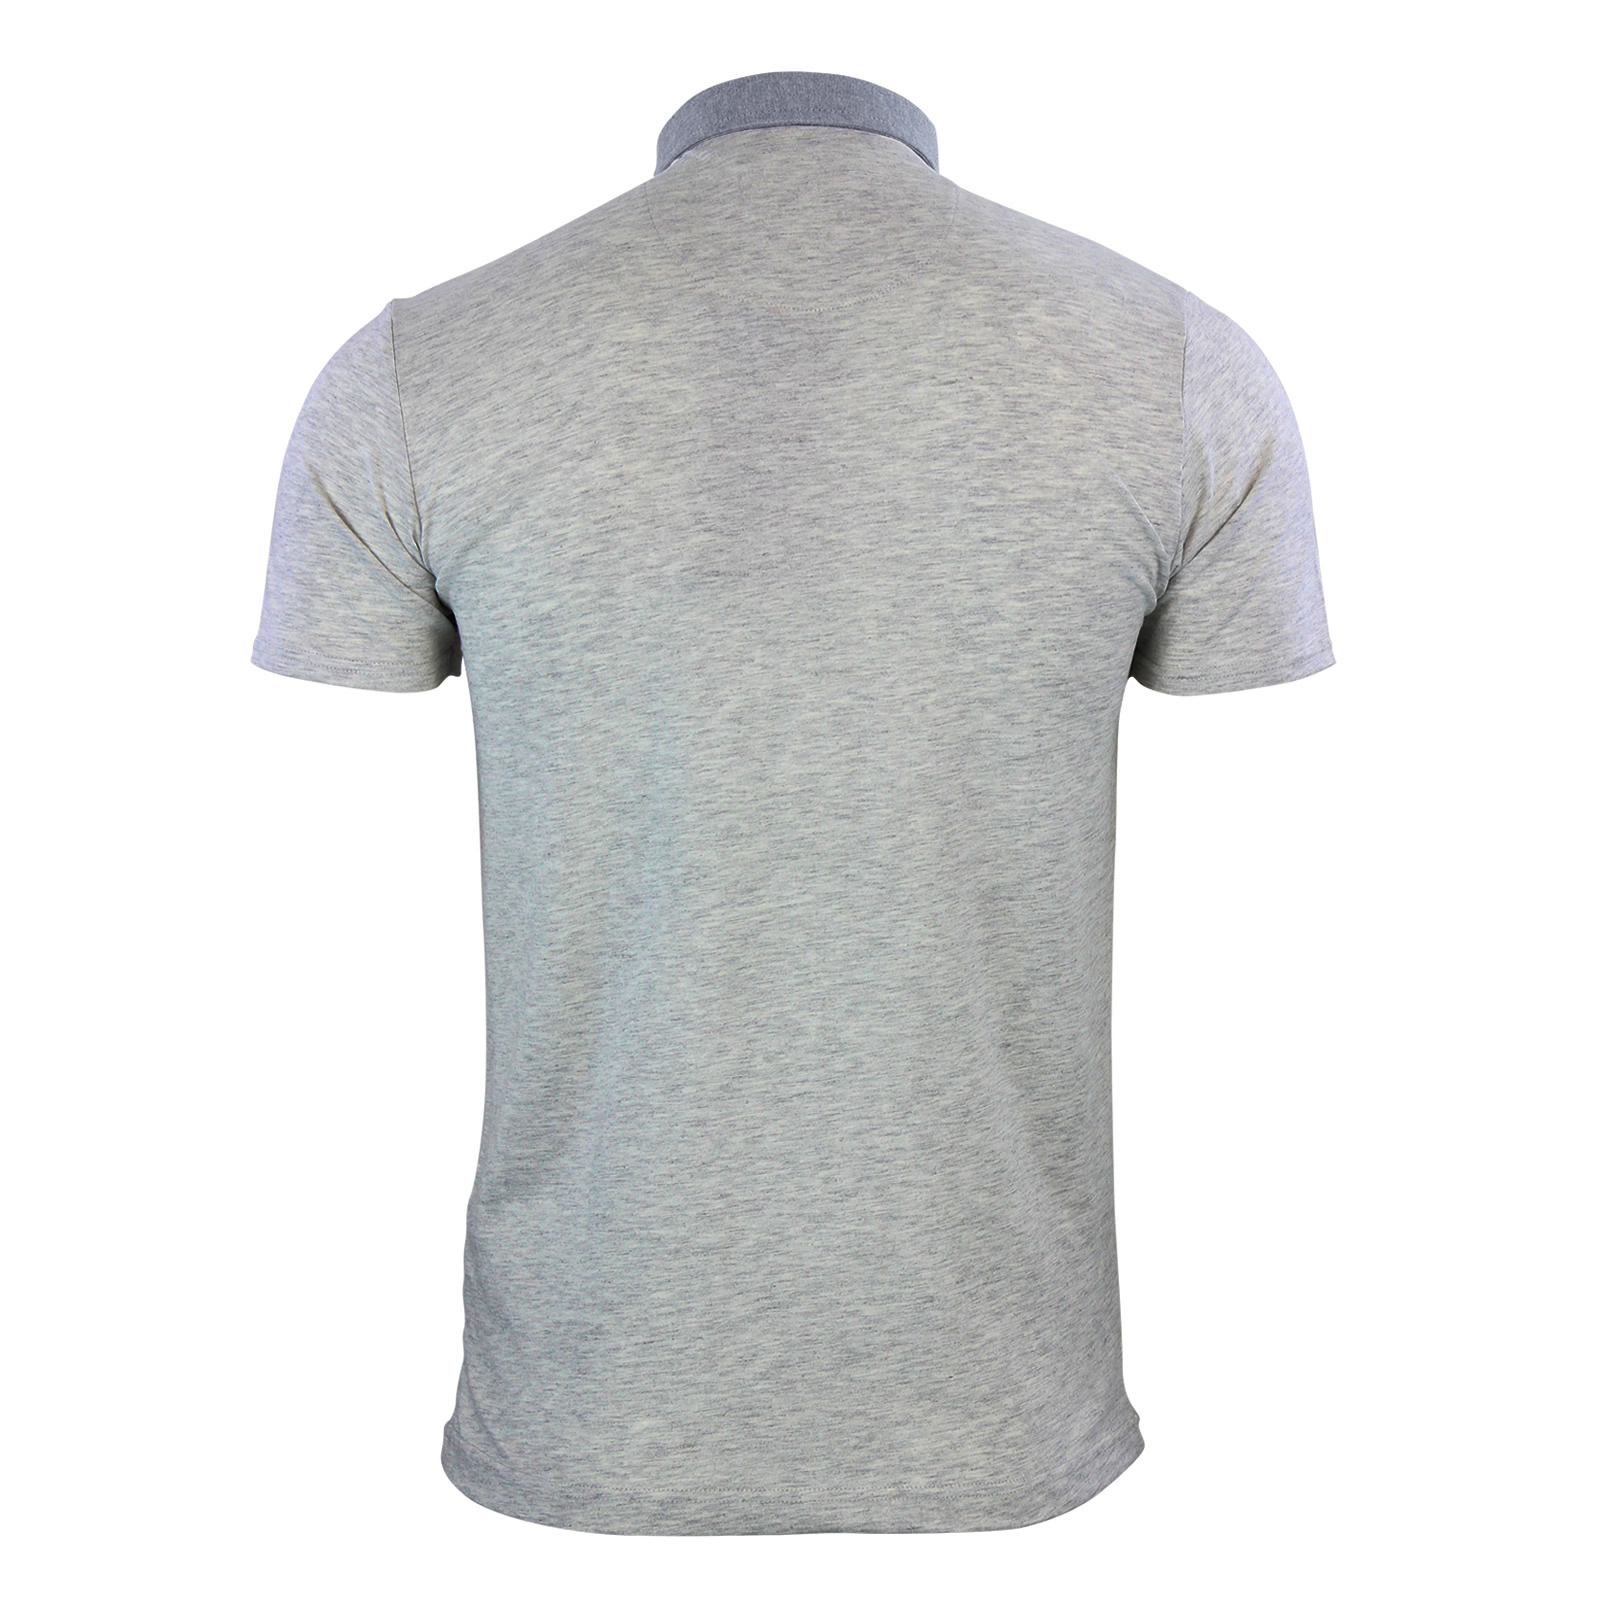 Mens-Polo-T-Shirt-Brave-Soul-Chimera-Chambray-Collared-Cotton-Casual-Top thumbnail 12